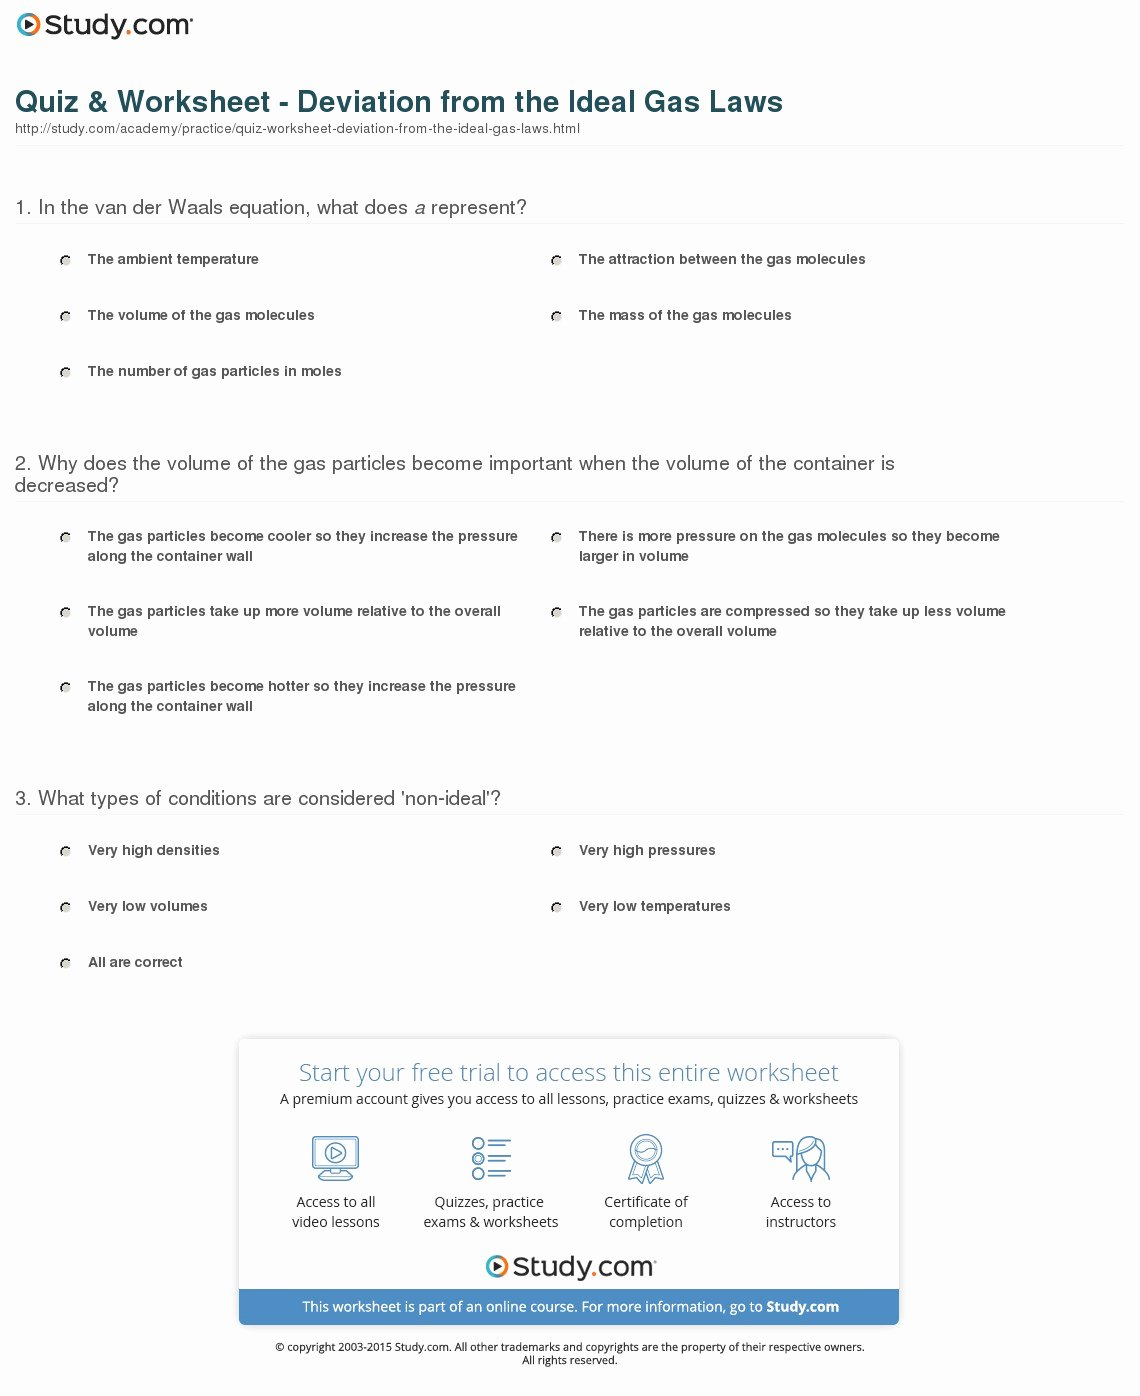 Ideal Gas Law Worksheet Beautiful Quiz & Worksheet Deviation From the Ideal Gas Laws